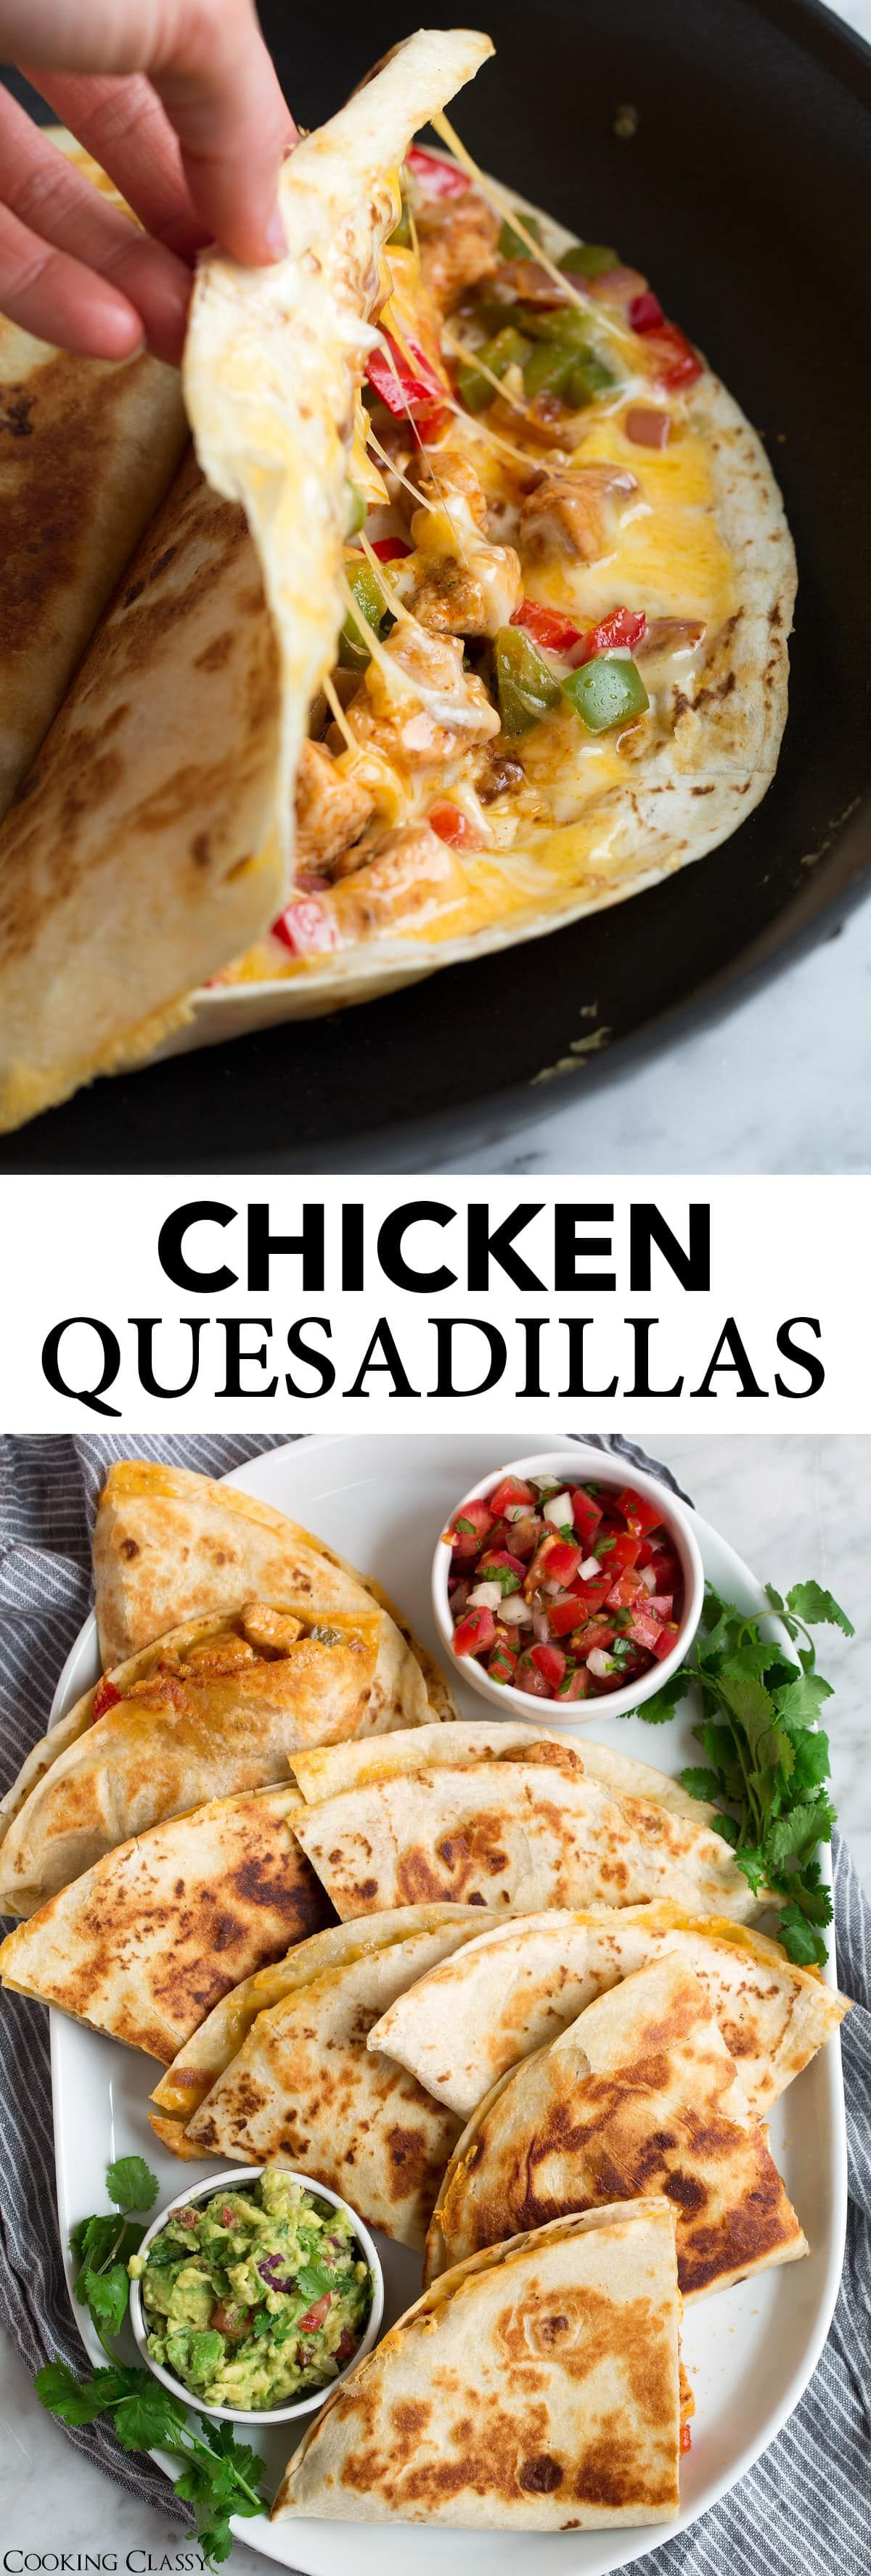 Loaded Chicken Quesadillas - The ultimate Quesadillas recipe! These are brimming with two kinds of gooey melted cheese and a flavorful, fajita style chicken and sautéed pepper filling. Talk about delicious Mexican comfort food everyone will go crazy for! #quesadillas #mexican #food #mexicanchickentacos